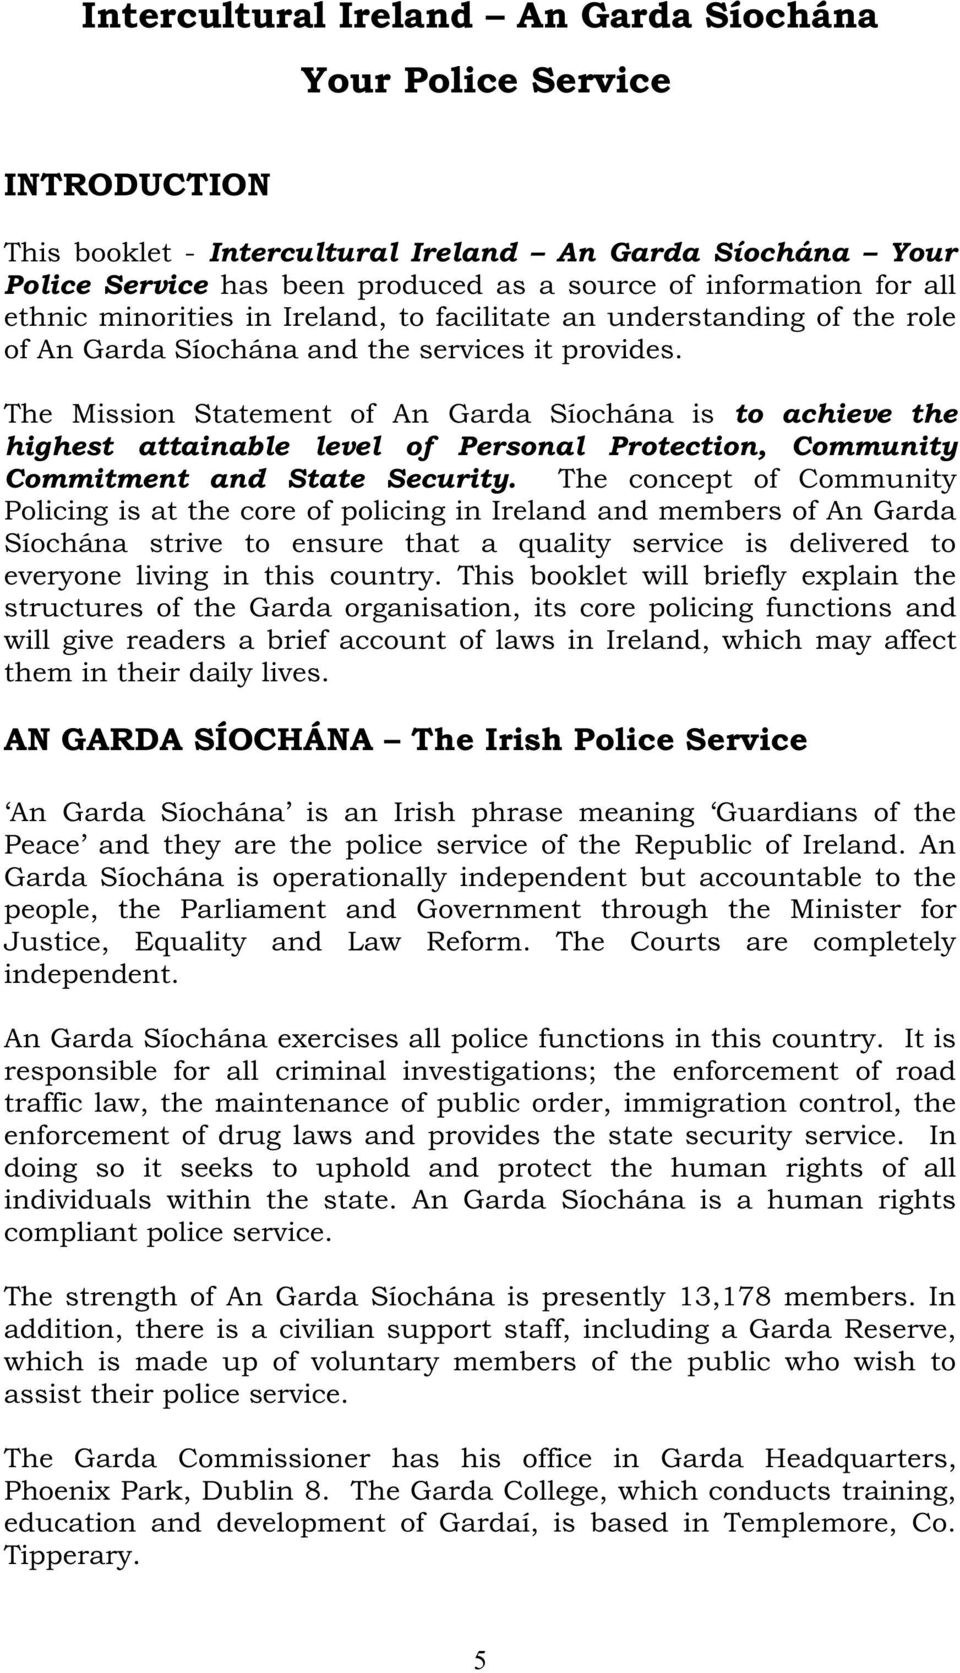 The Mission Statement of An Garda Síochána is to achieve the highest attainable level of Personal Protection, Community Commitment and State Security.